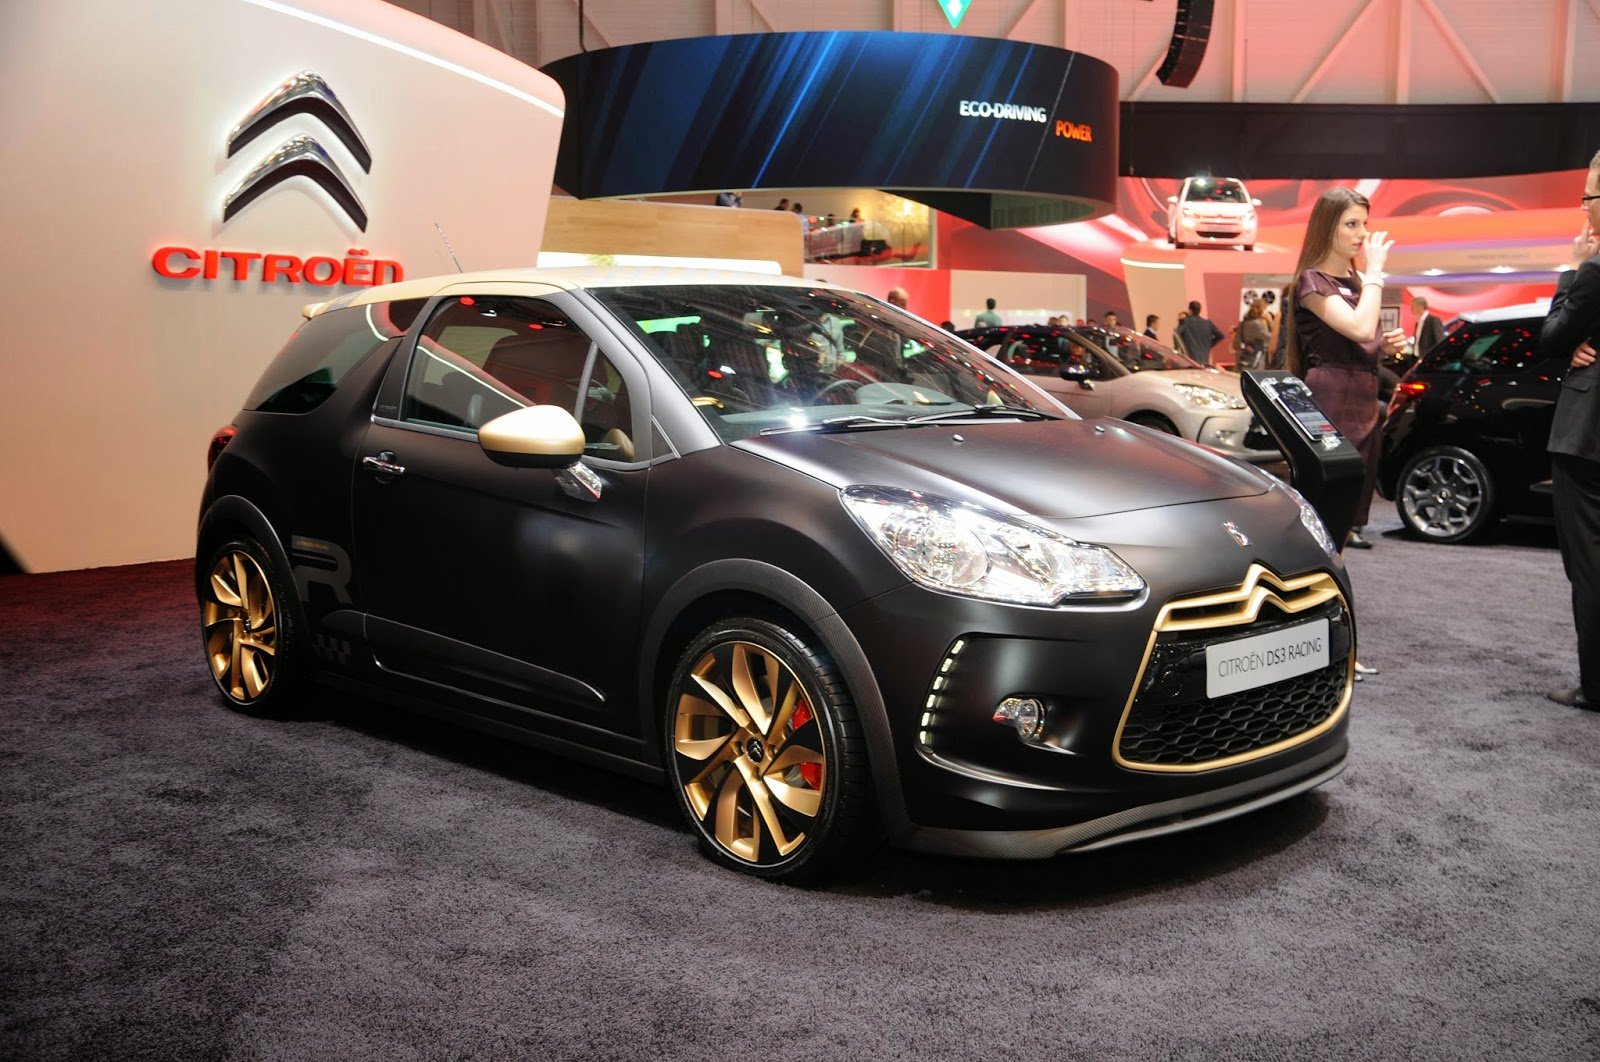 Citroën DS3, the most sold premium car of its category